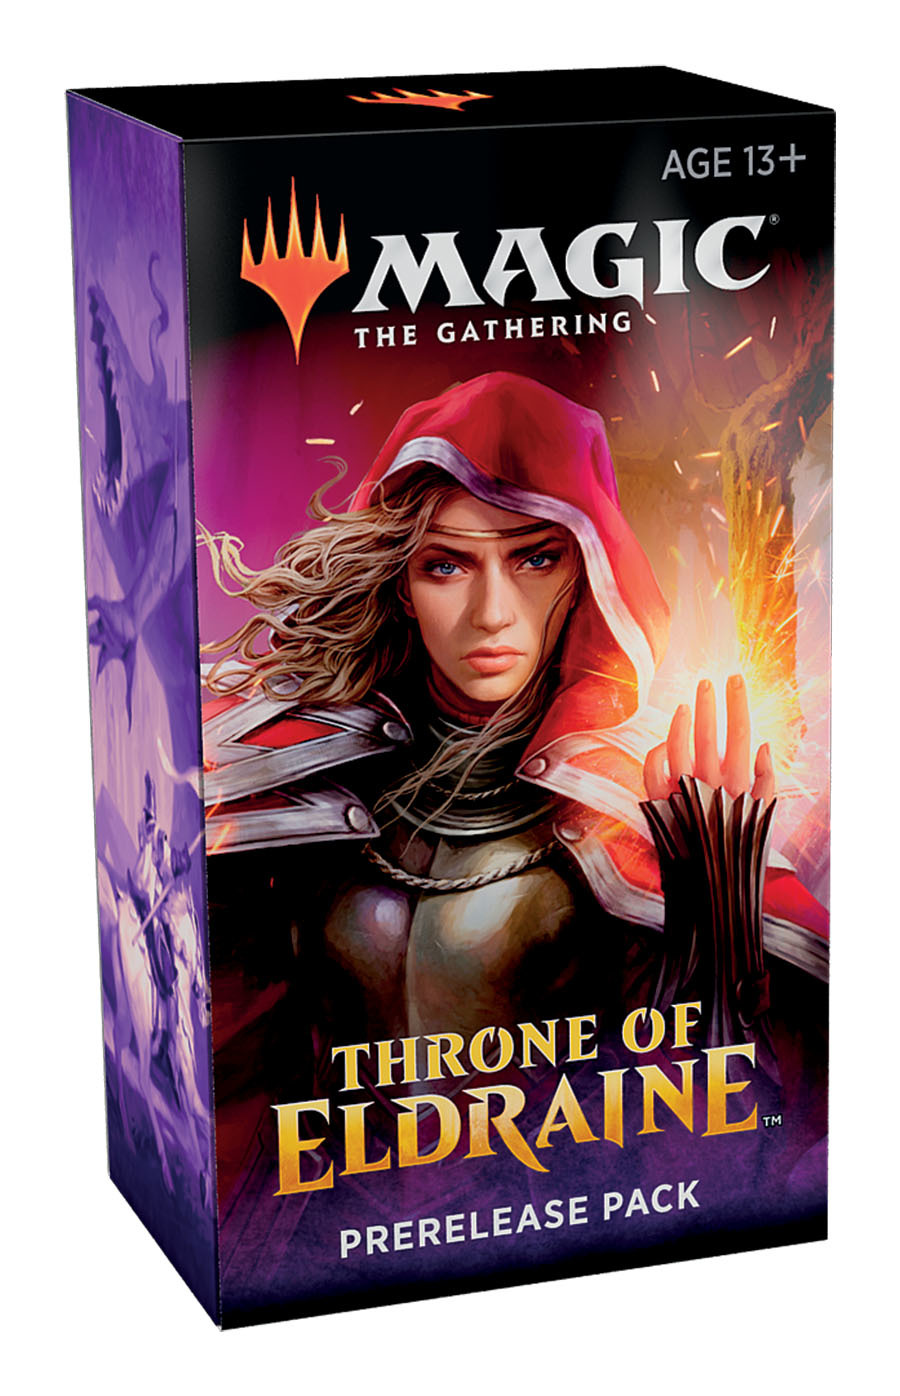 Magic The Gathering: Throne of Eldraine Prerelease Pack image